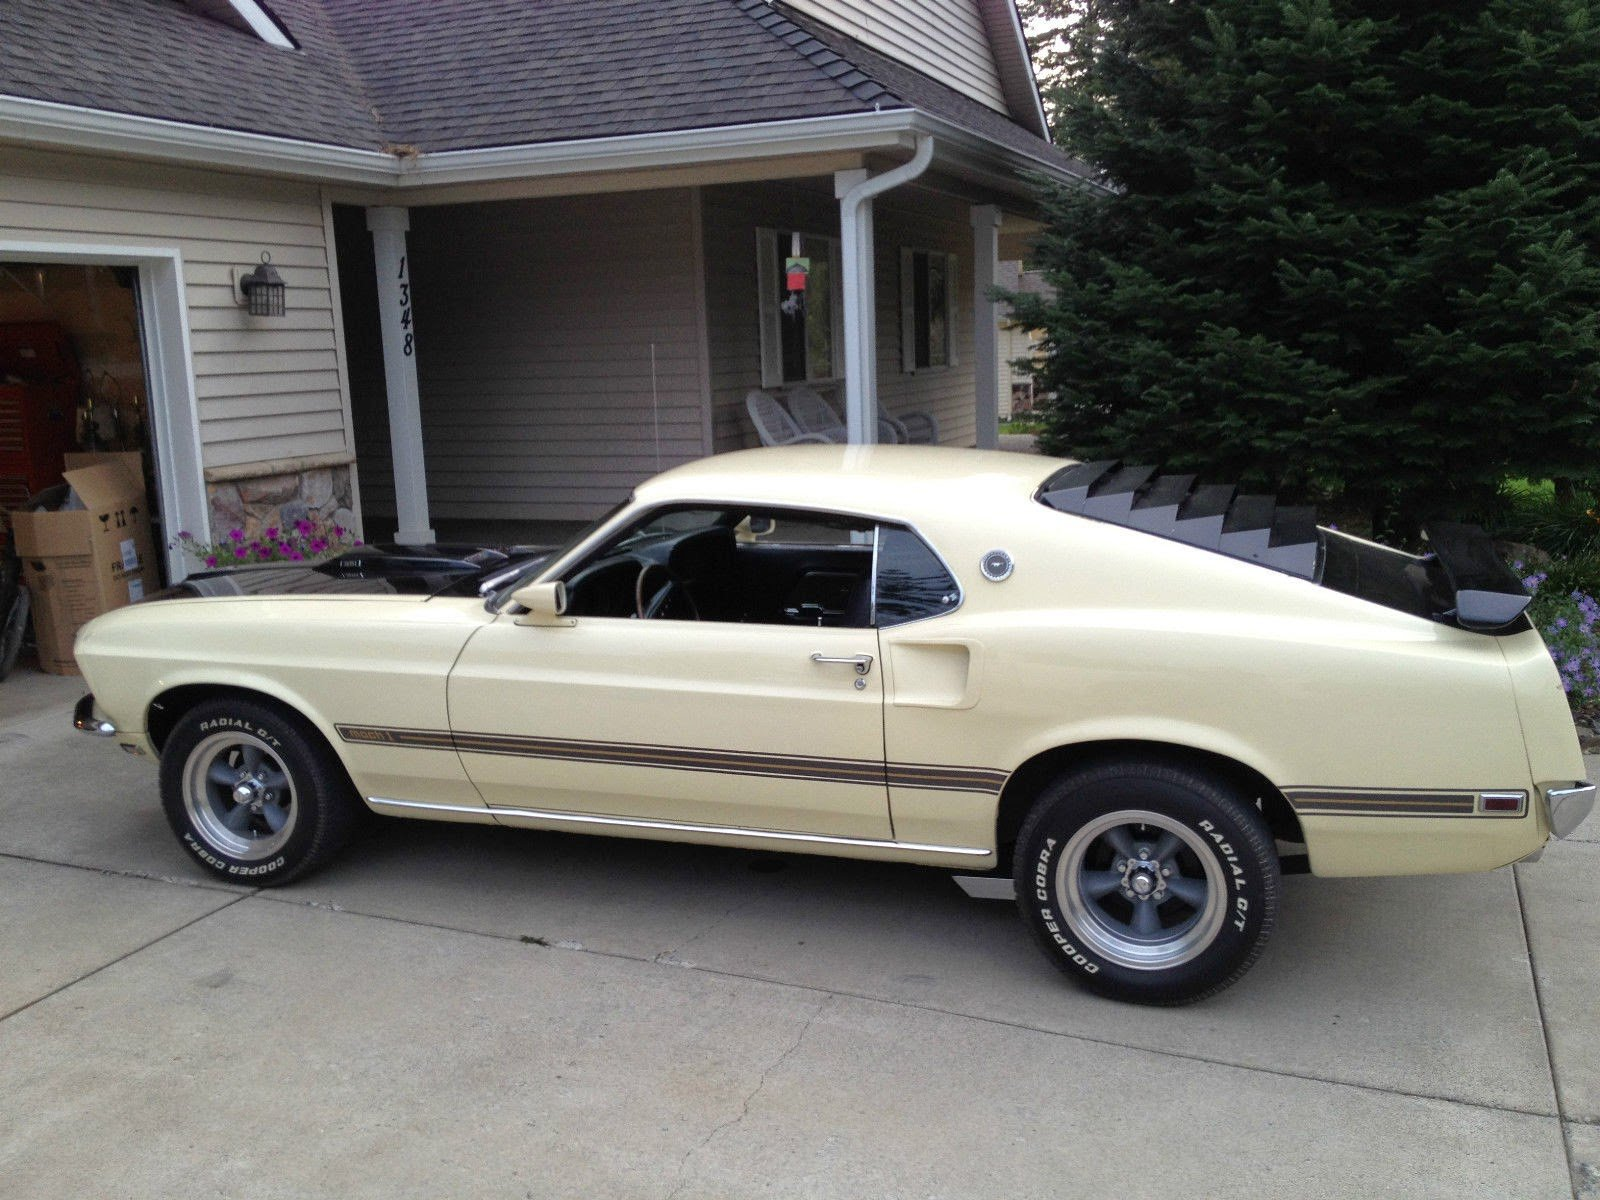 1969 Ford Mustang Fastback 351 Mach1 Muscle Hot Rod Custom